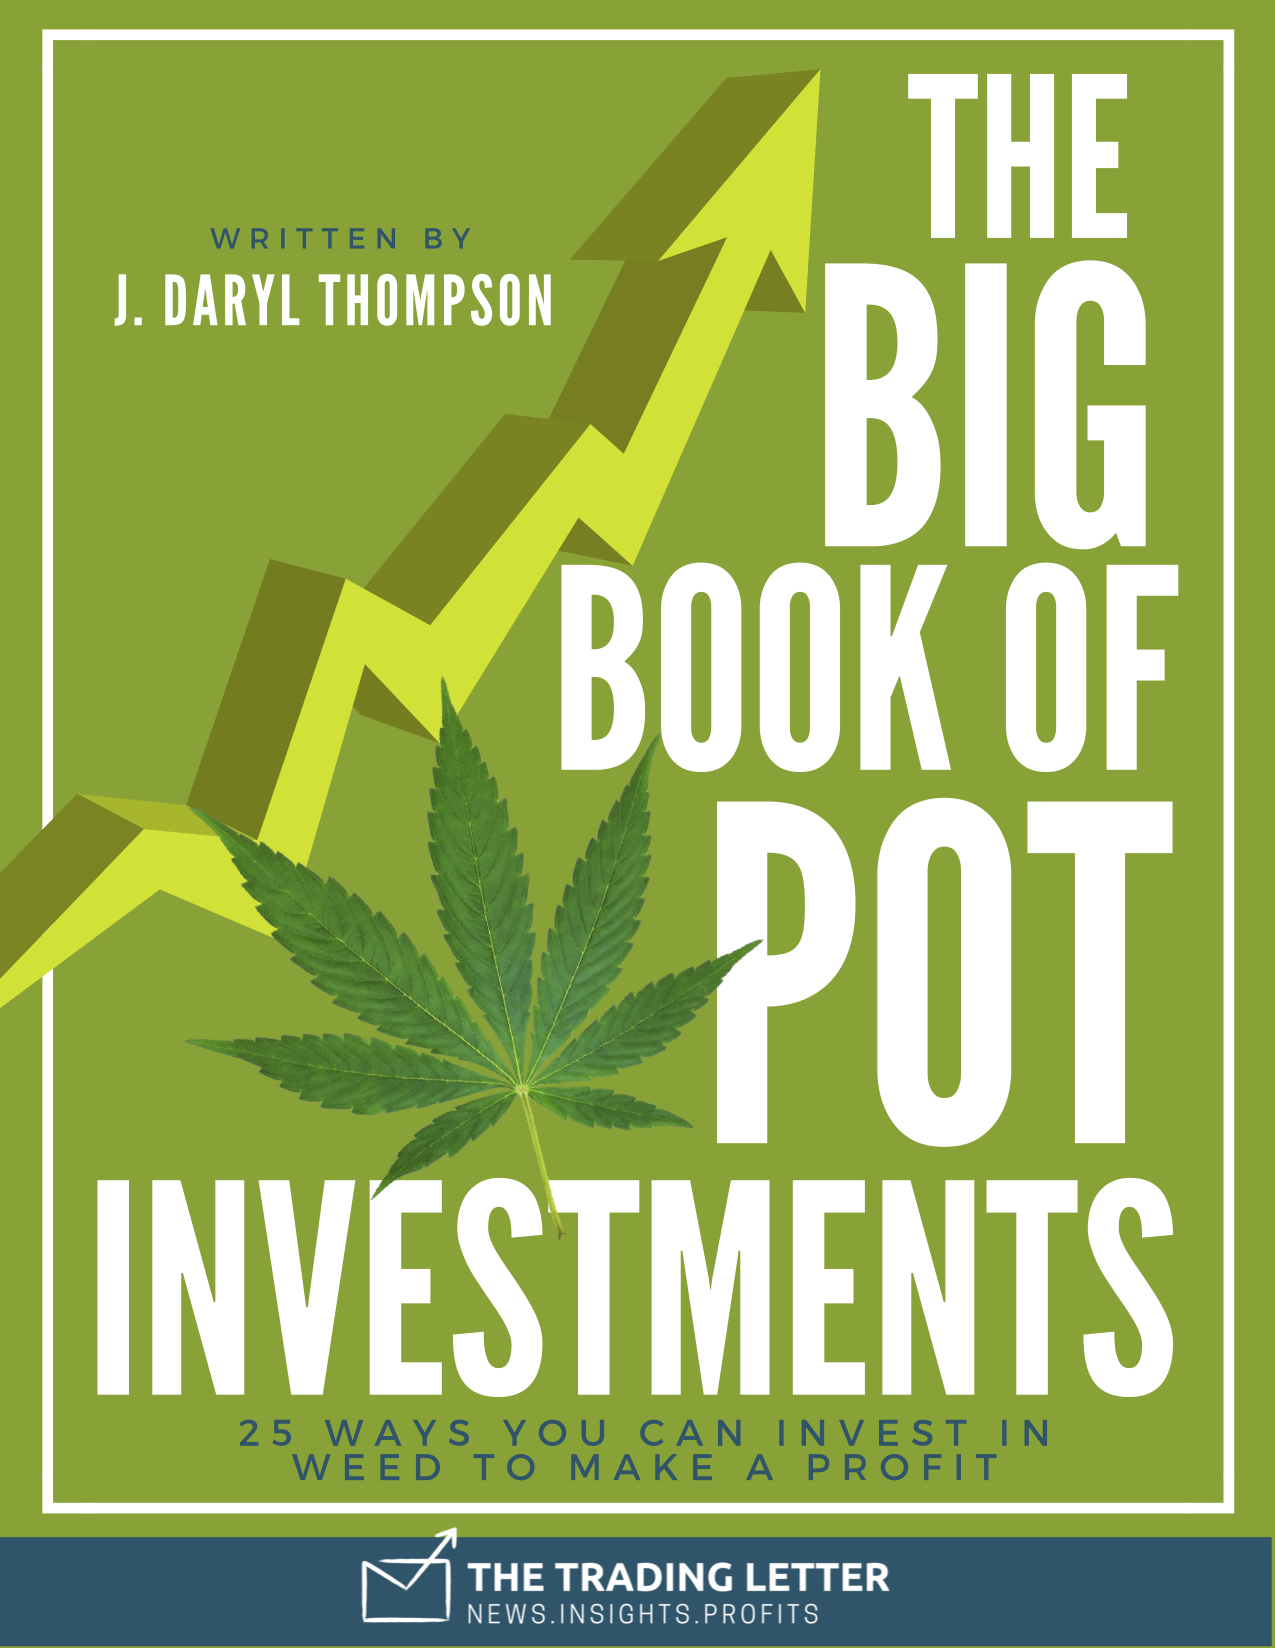 The Big Book Of Pot Investments The Trading Letter Investing